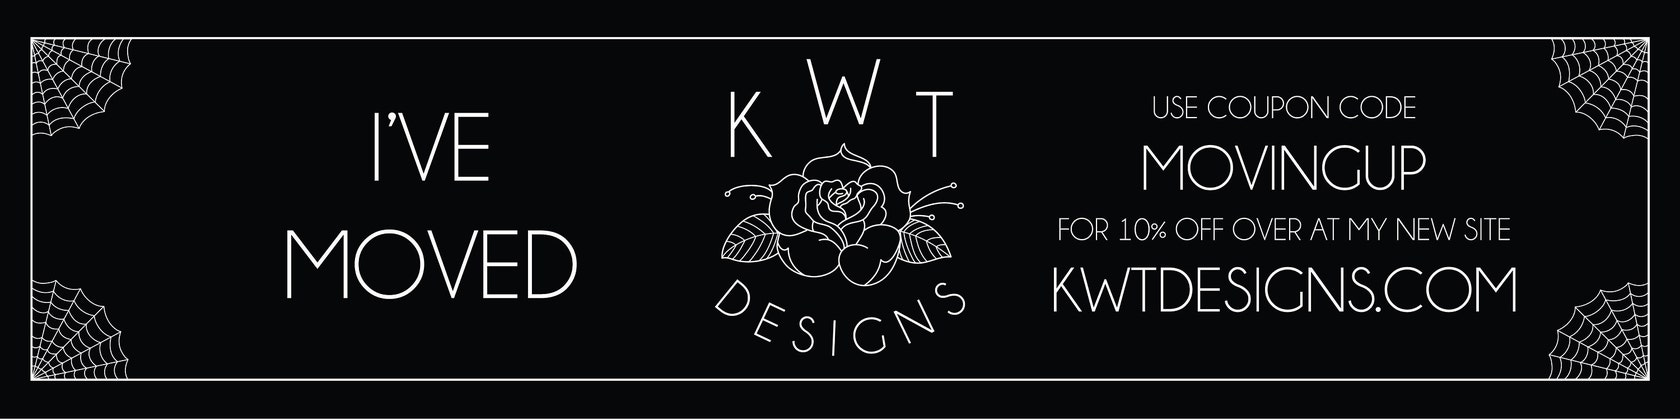 Kwt designs by kwtallantdesigns on etsy kwtallantdesigns fandeluxe